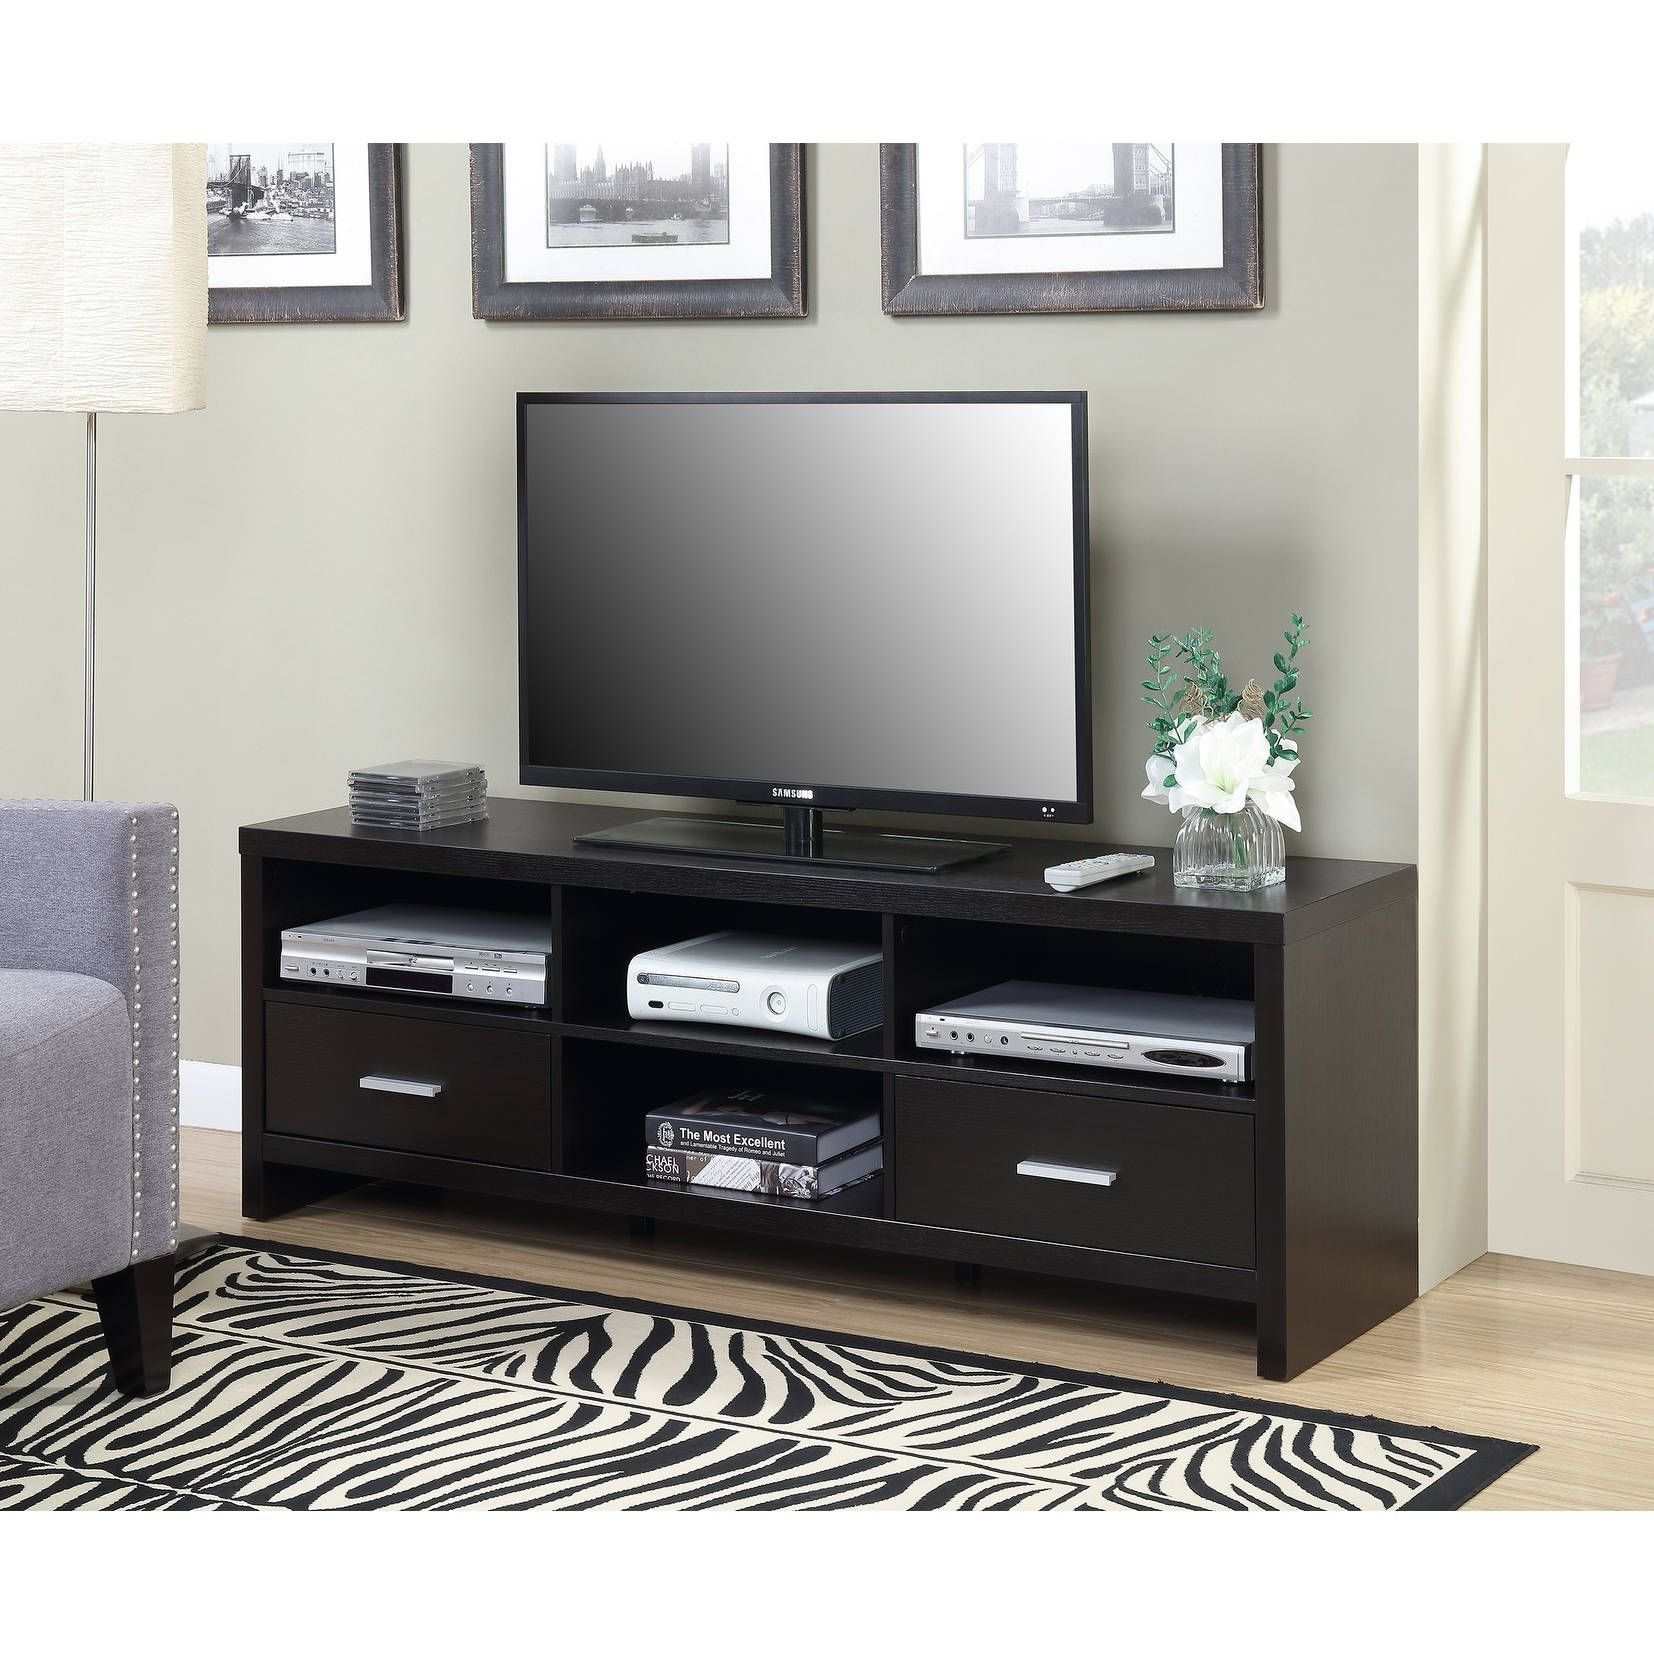 Convenience Concepts Designs2go Key West 60 Inch Tv Stand Espresso Finish